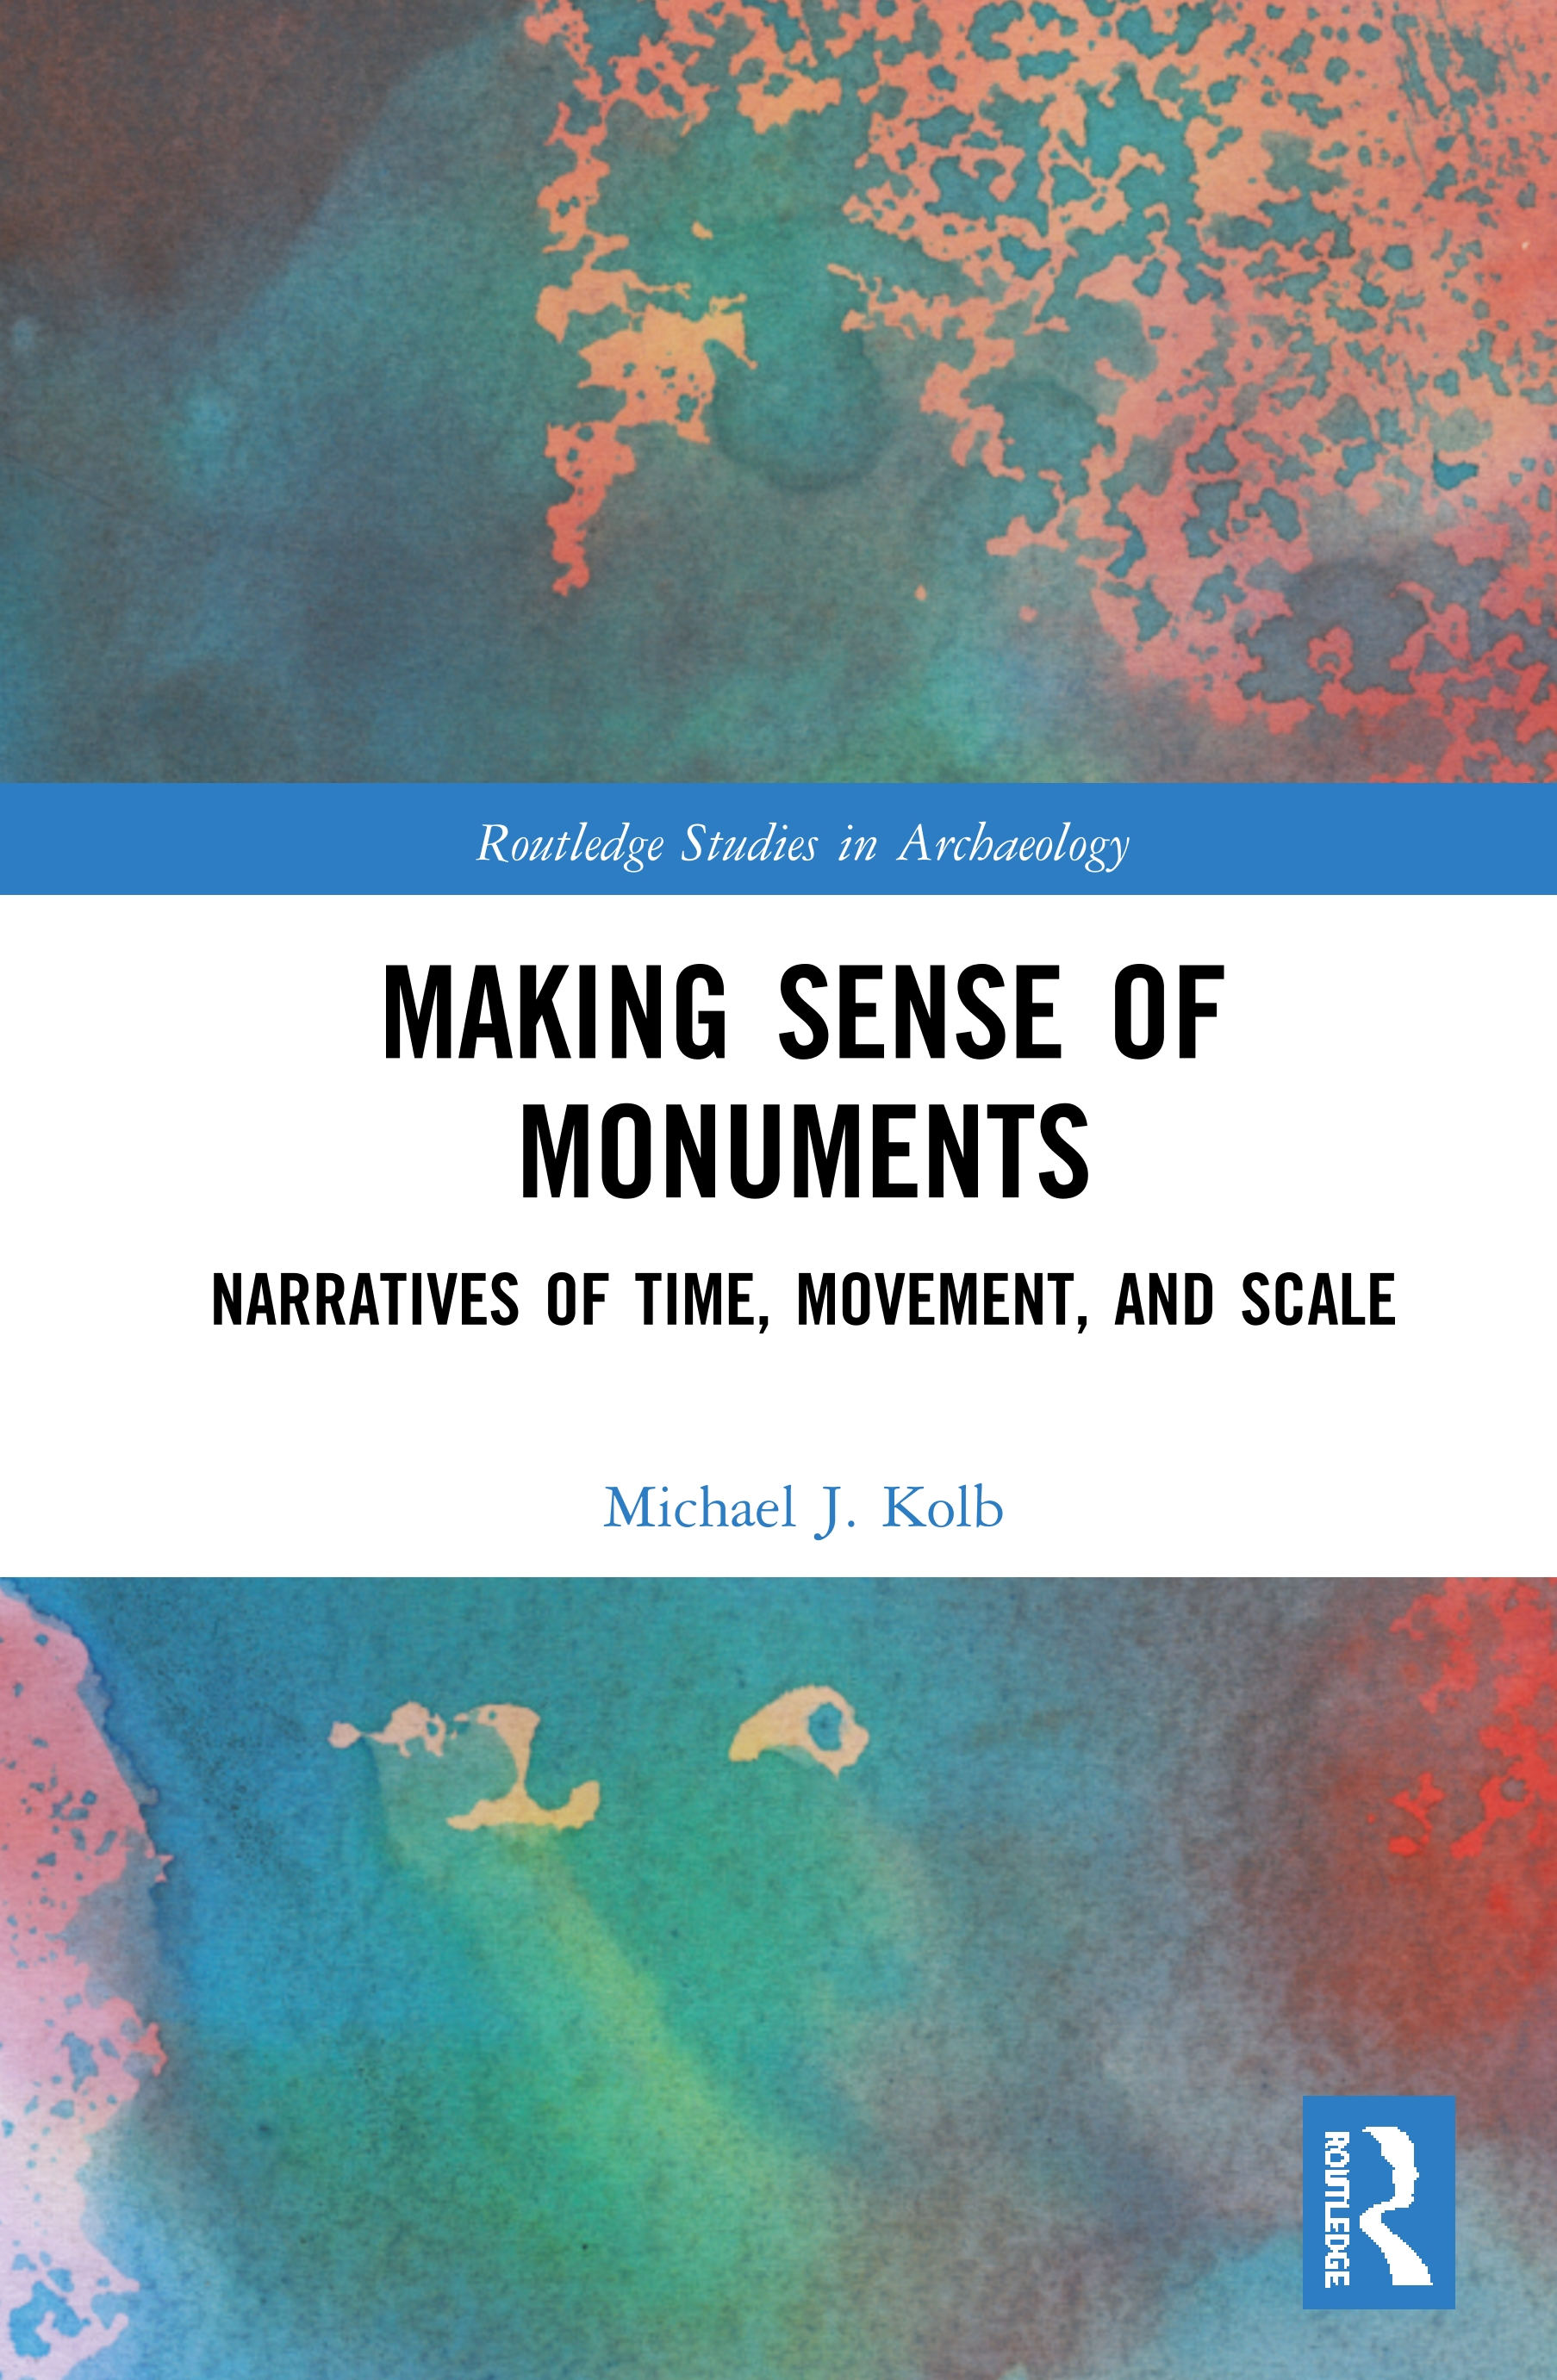 Making Sense of Monuments: Narratives of Time, Movement, and Scale book cover